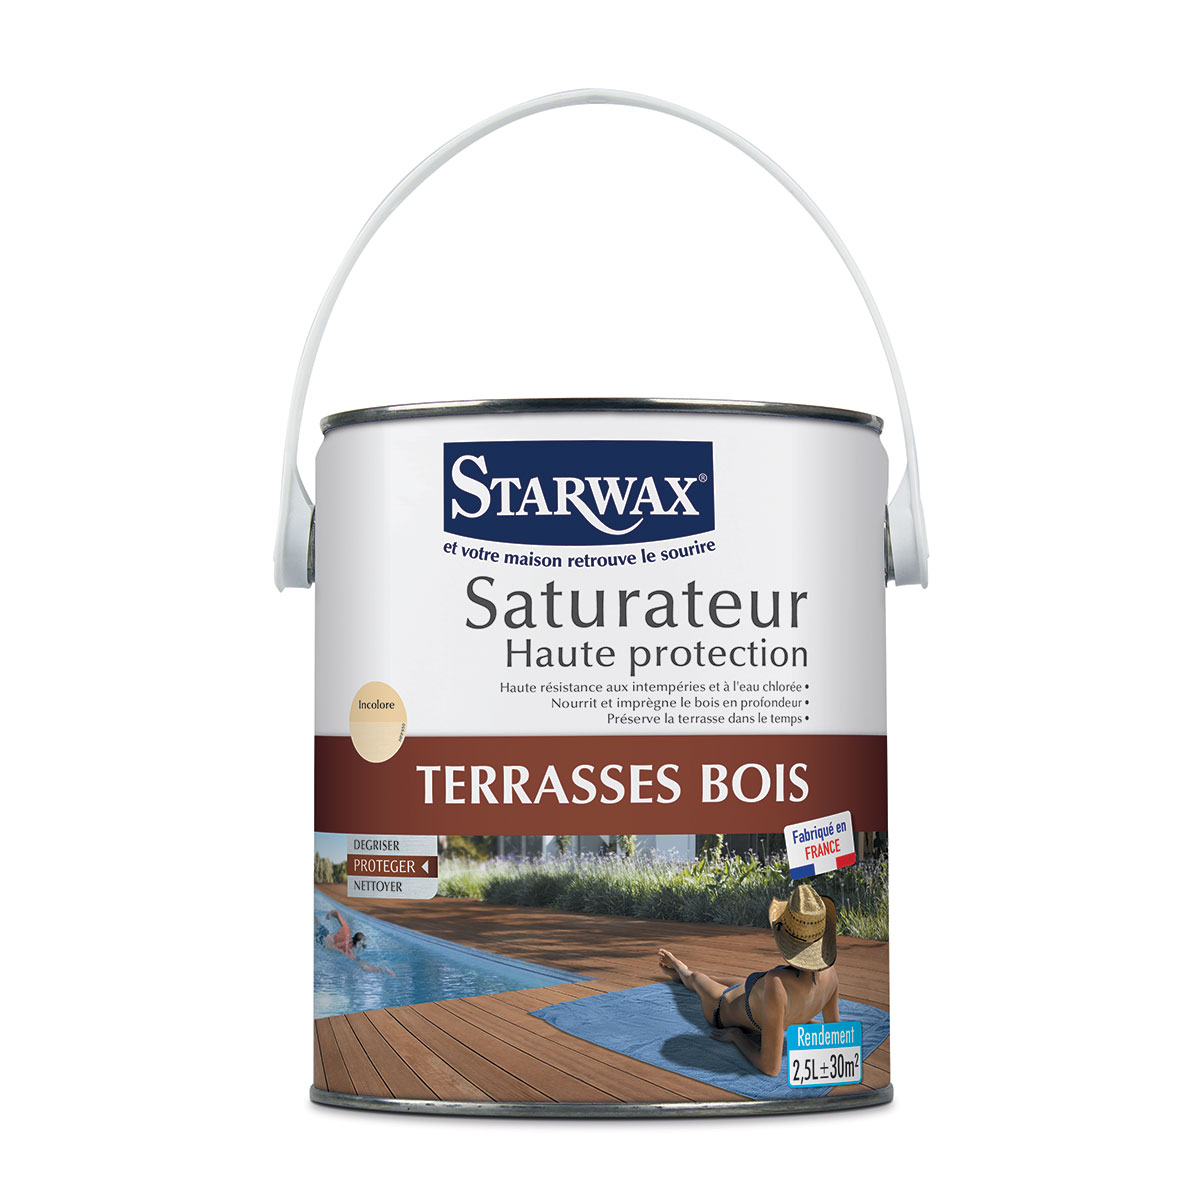 Saturateur haute protection - Starwax